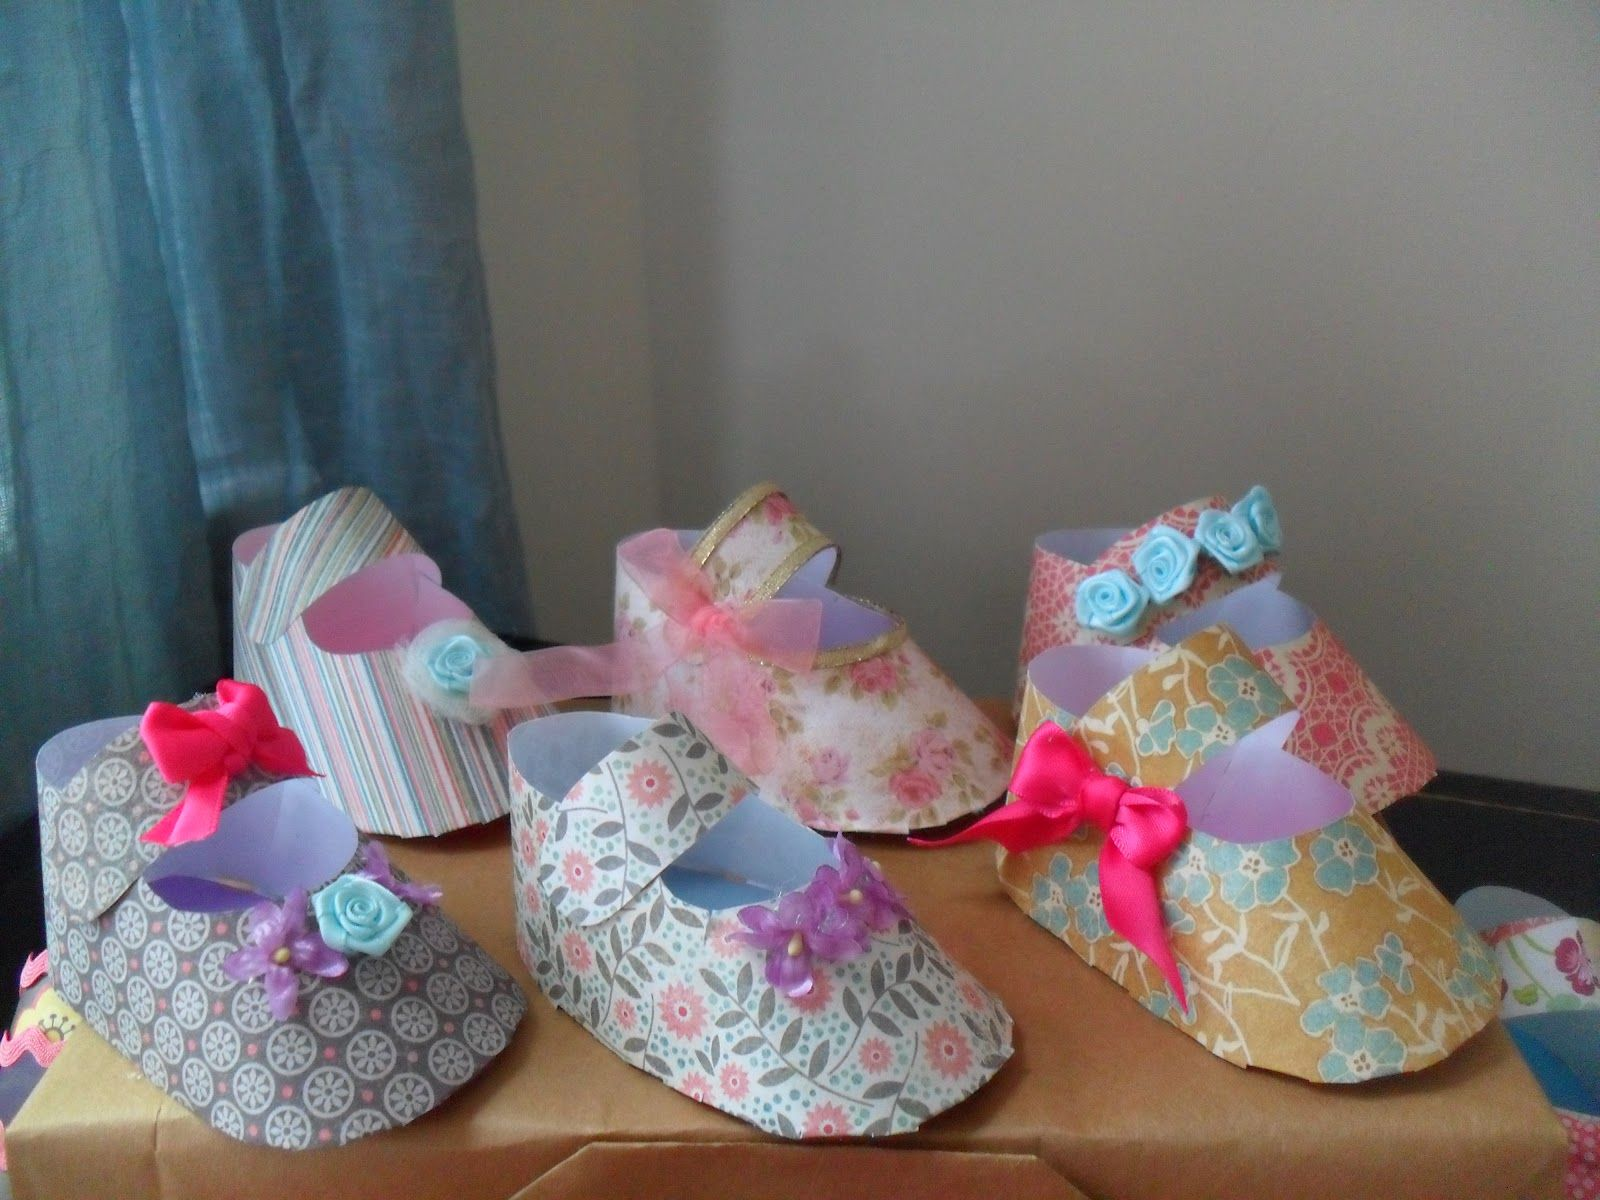 Self made baby shower decorations lostmama shabby chic baby self made baby shower decorations lostmama shabby chic baby bootie favors tutorial solutioingenieria Image collections